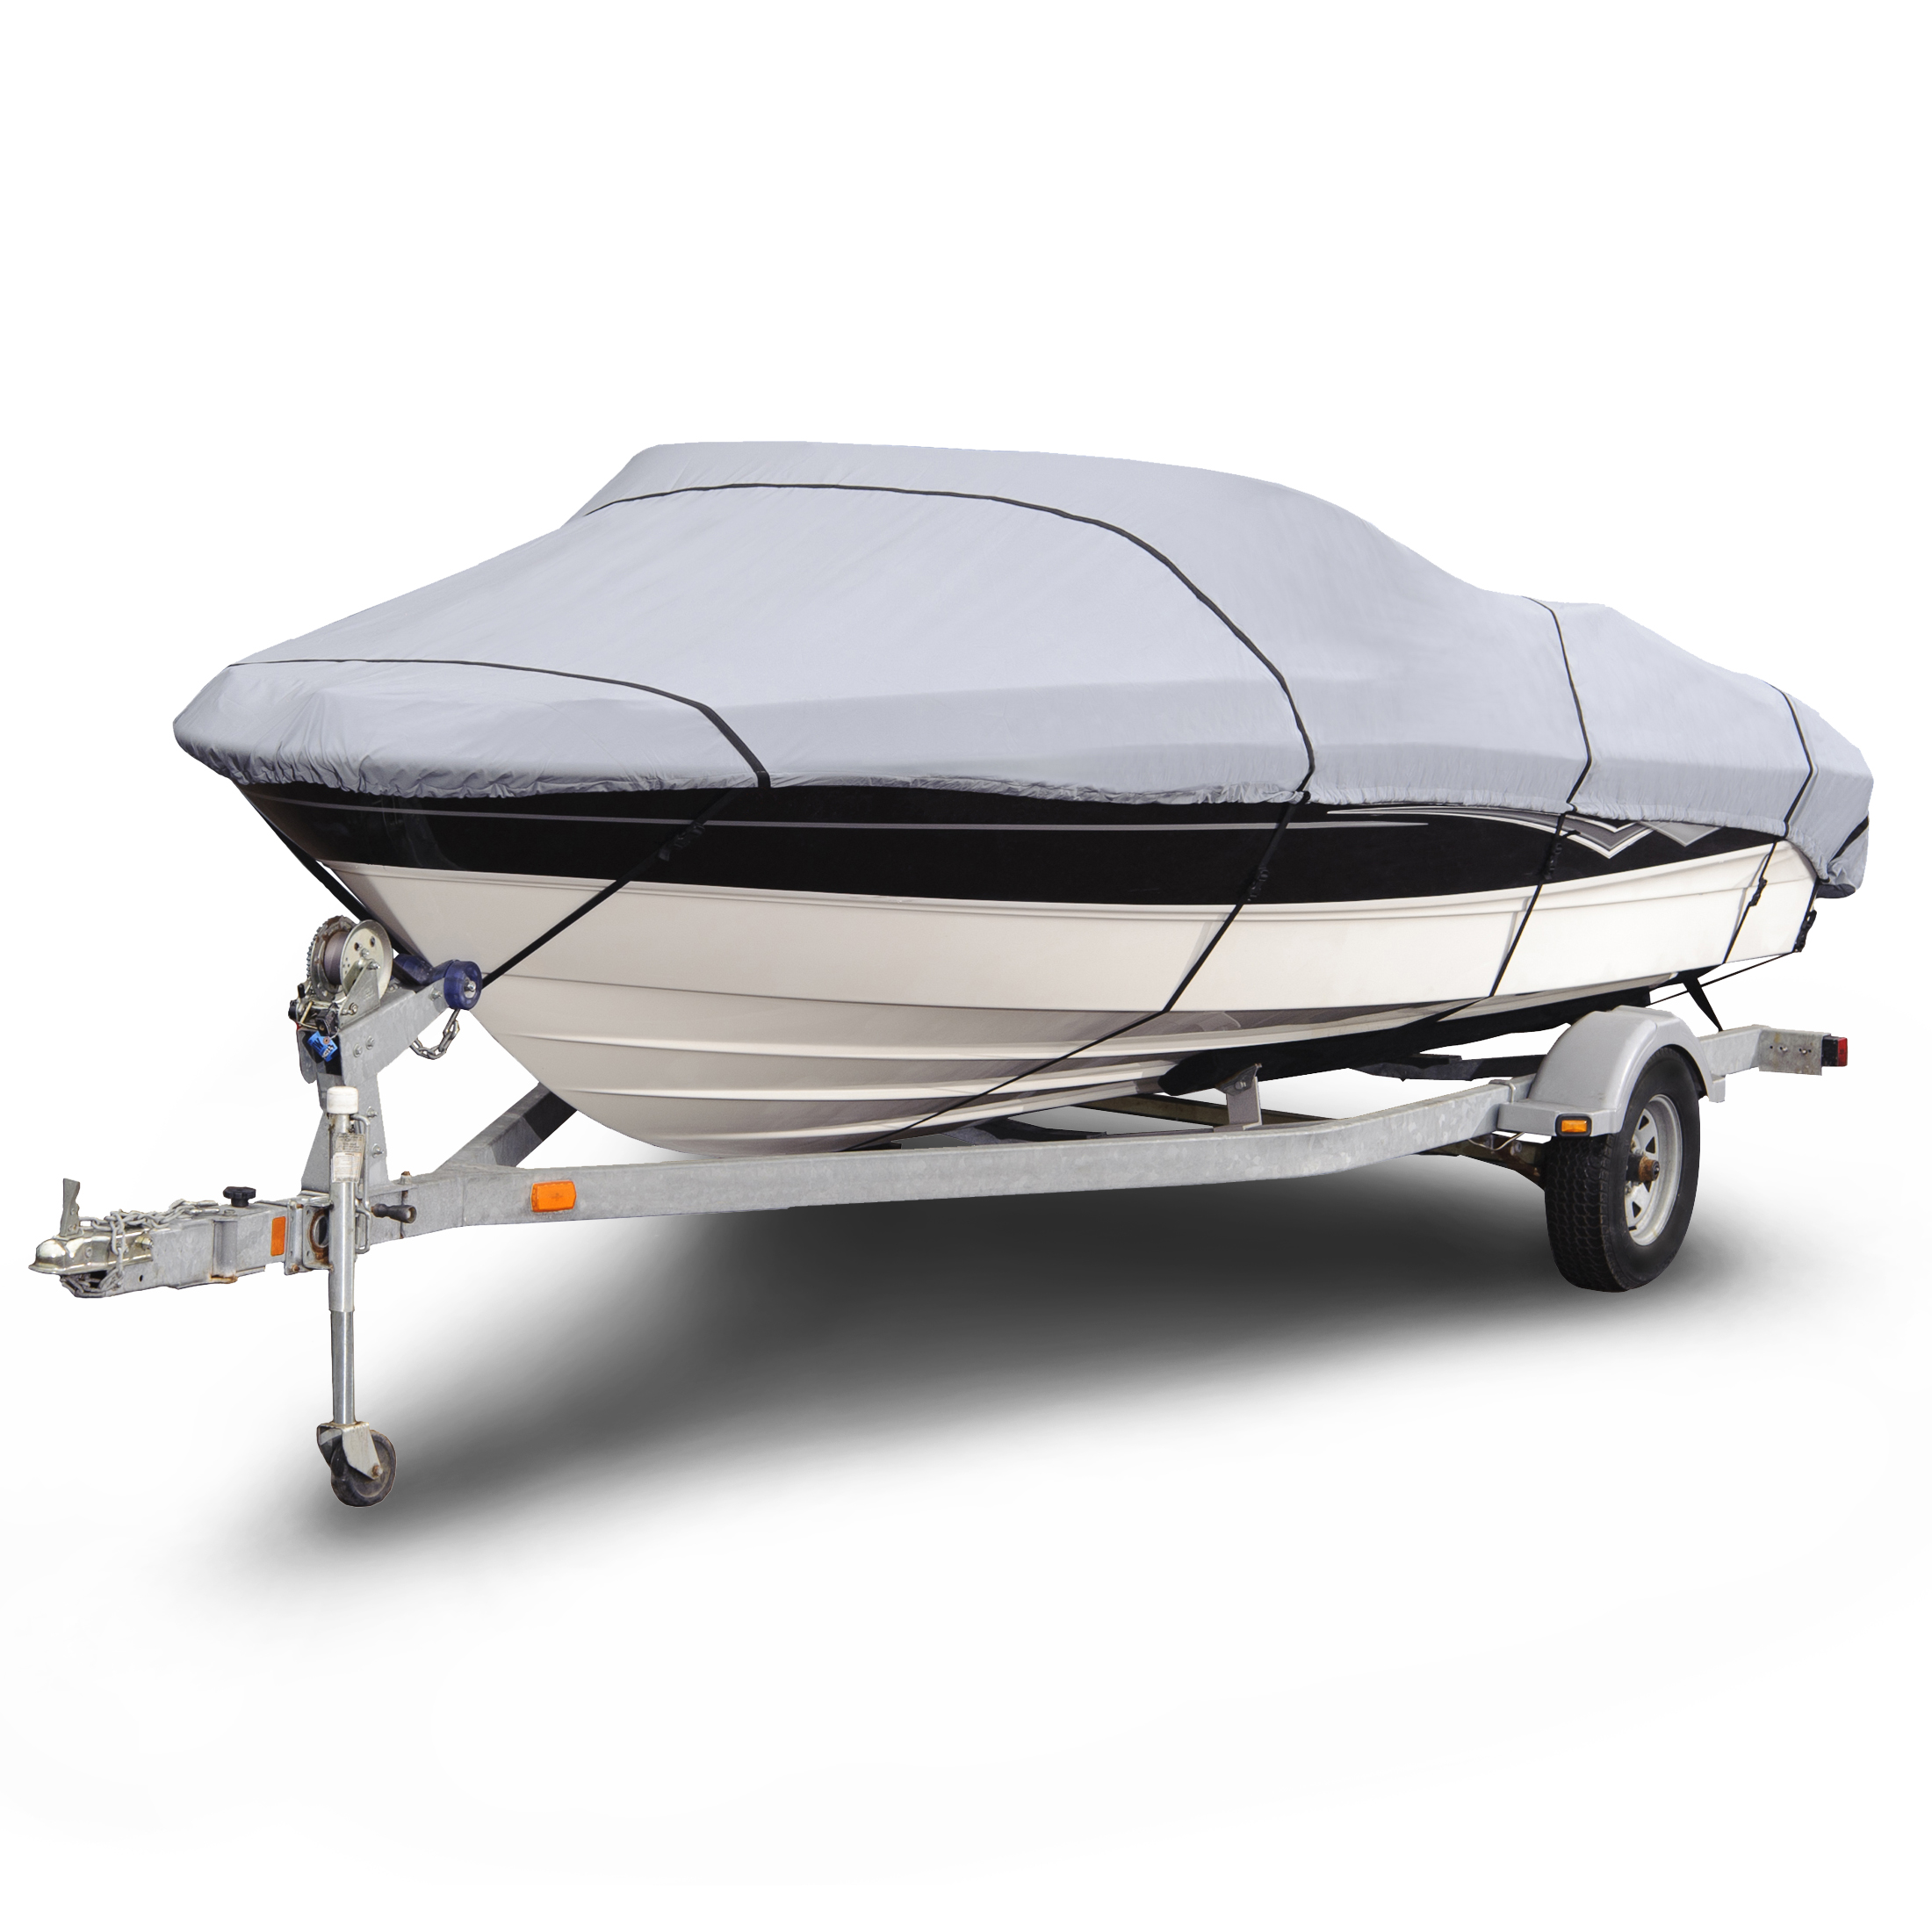 BUDGE 150 Denier Boat Cover, Weather Resistant Outdoor Bo...